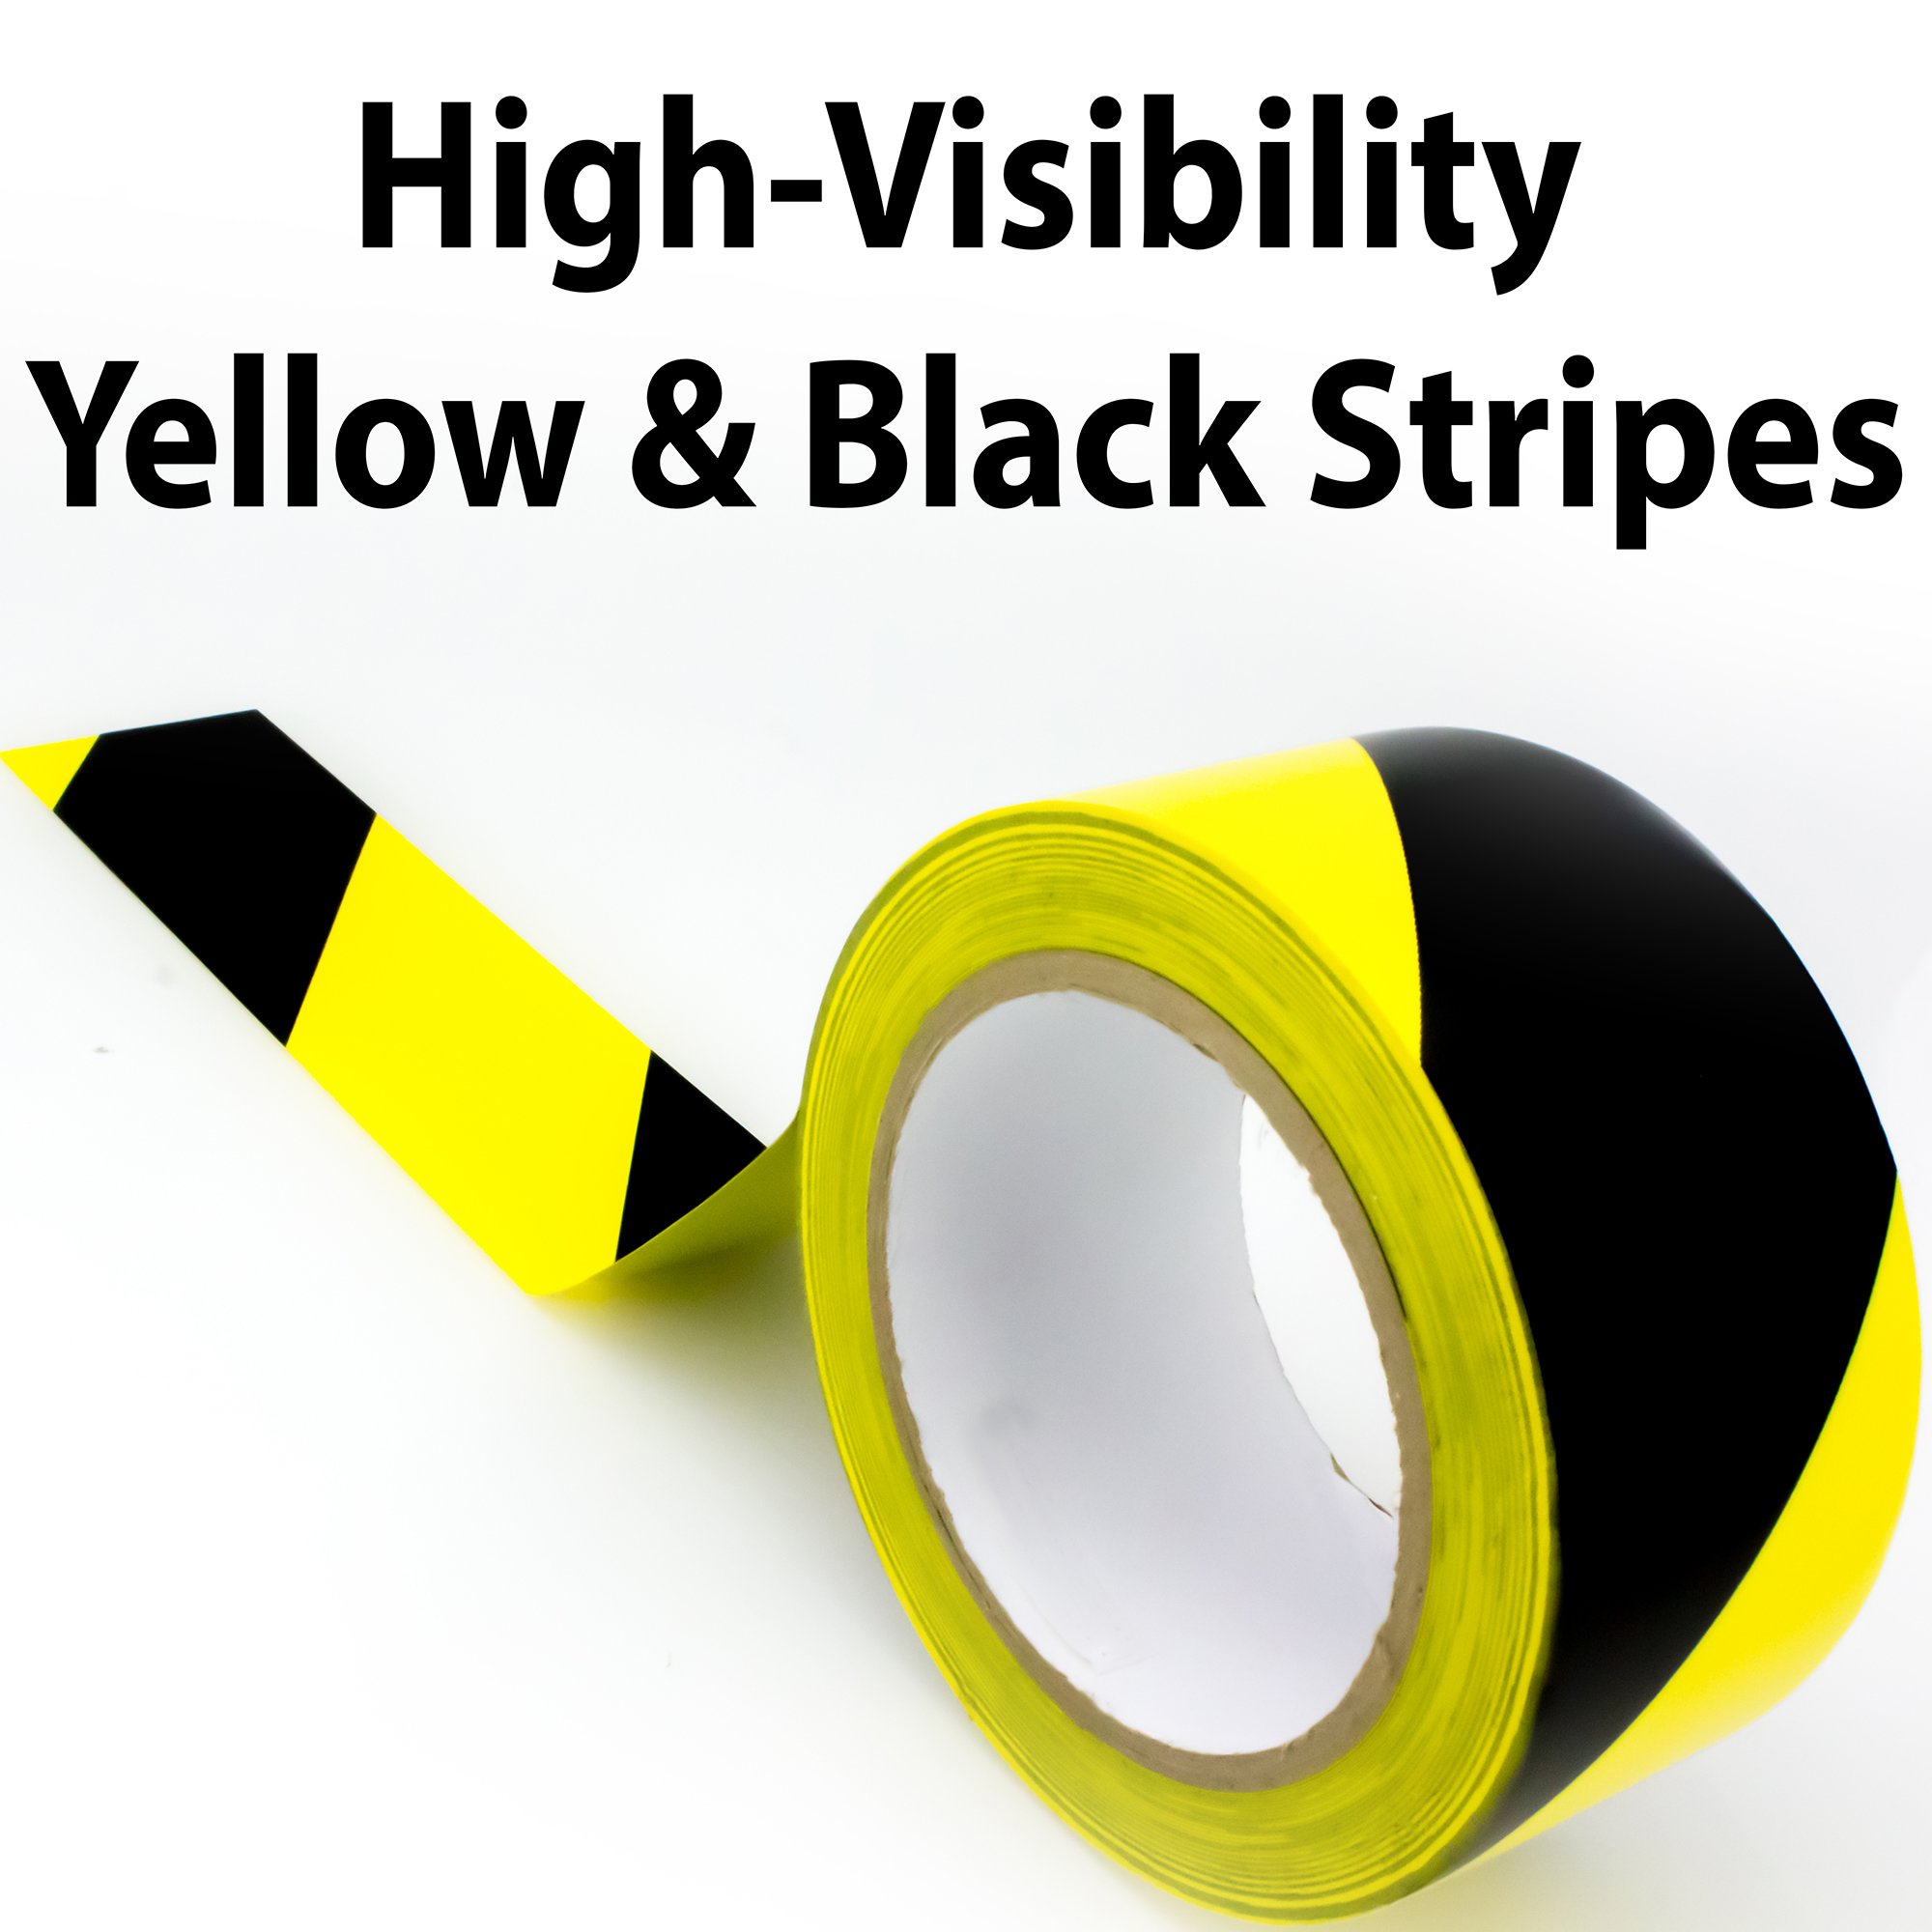 Double-Roll of Ultra-Adhesive, Black & Yellow Hazard Tape for Floor Marking. Mark Floors & Watch Your Step Areas for Safety with High-Visibility, Anti-Scuff, Striped PVC Vinyl by Nova Supply by Nova (Image #7)